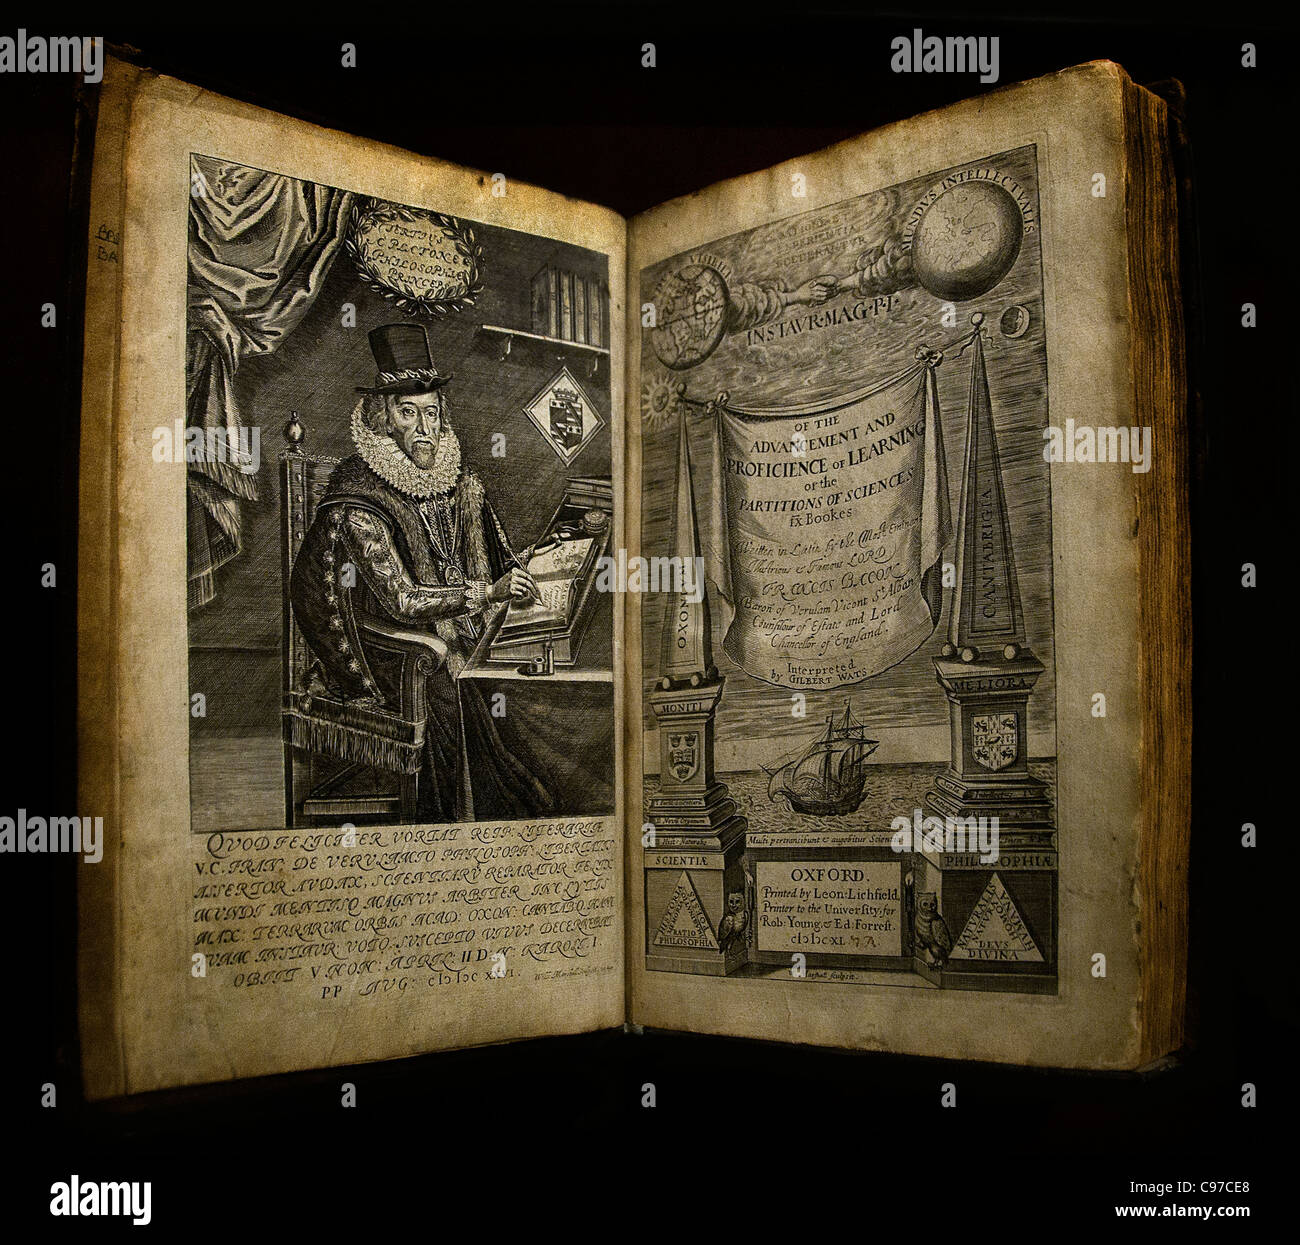 Francis Bacon 1561 English philosopher  Advancement  and Proficience of learning - Stock Image